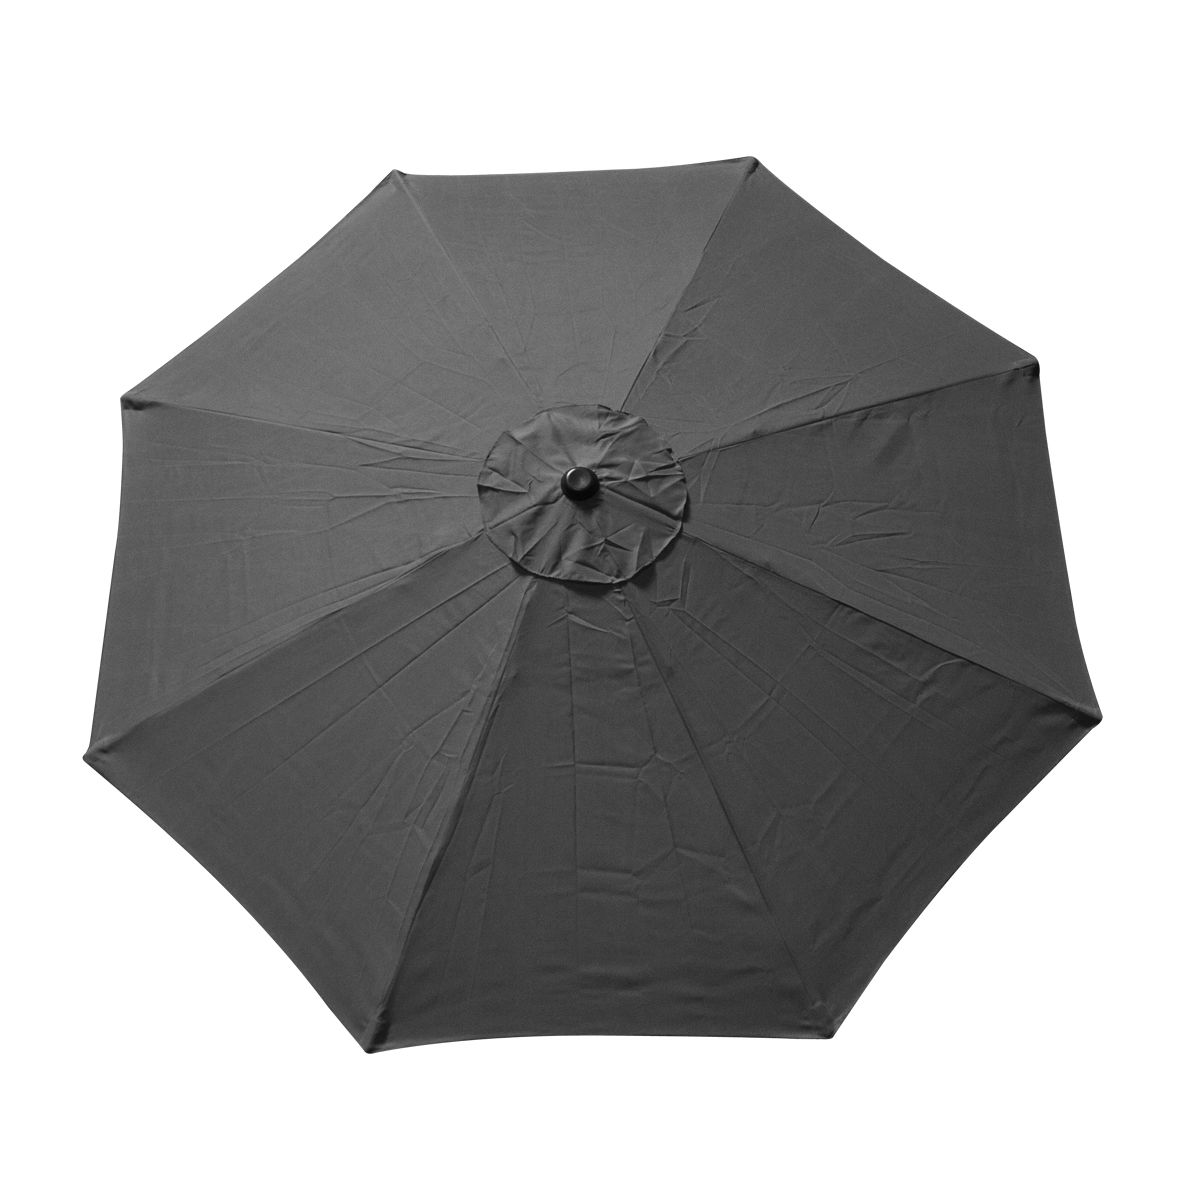 Patio Umbrella Material Replacement: 9 FT 8 Ribs Replacement Umbrella Cover Canopy Grey Top